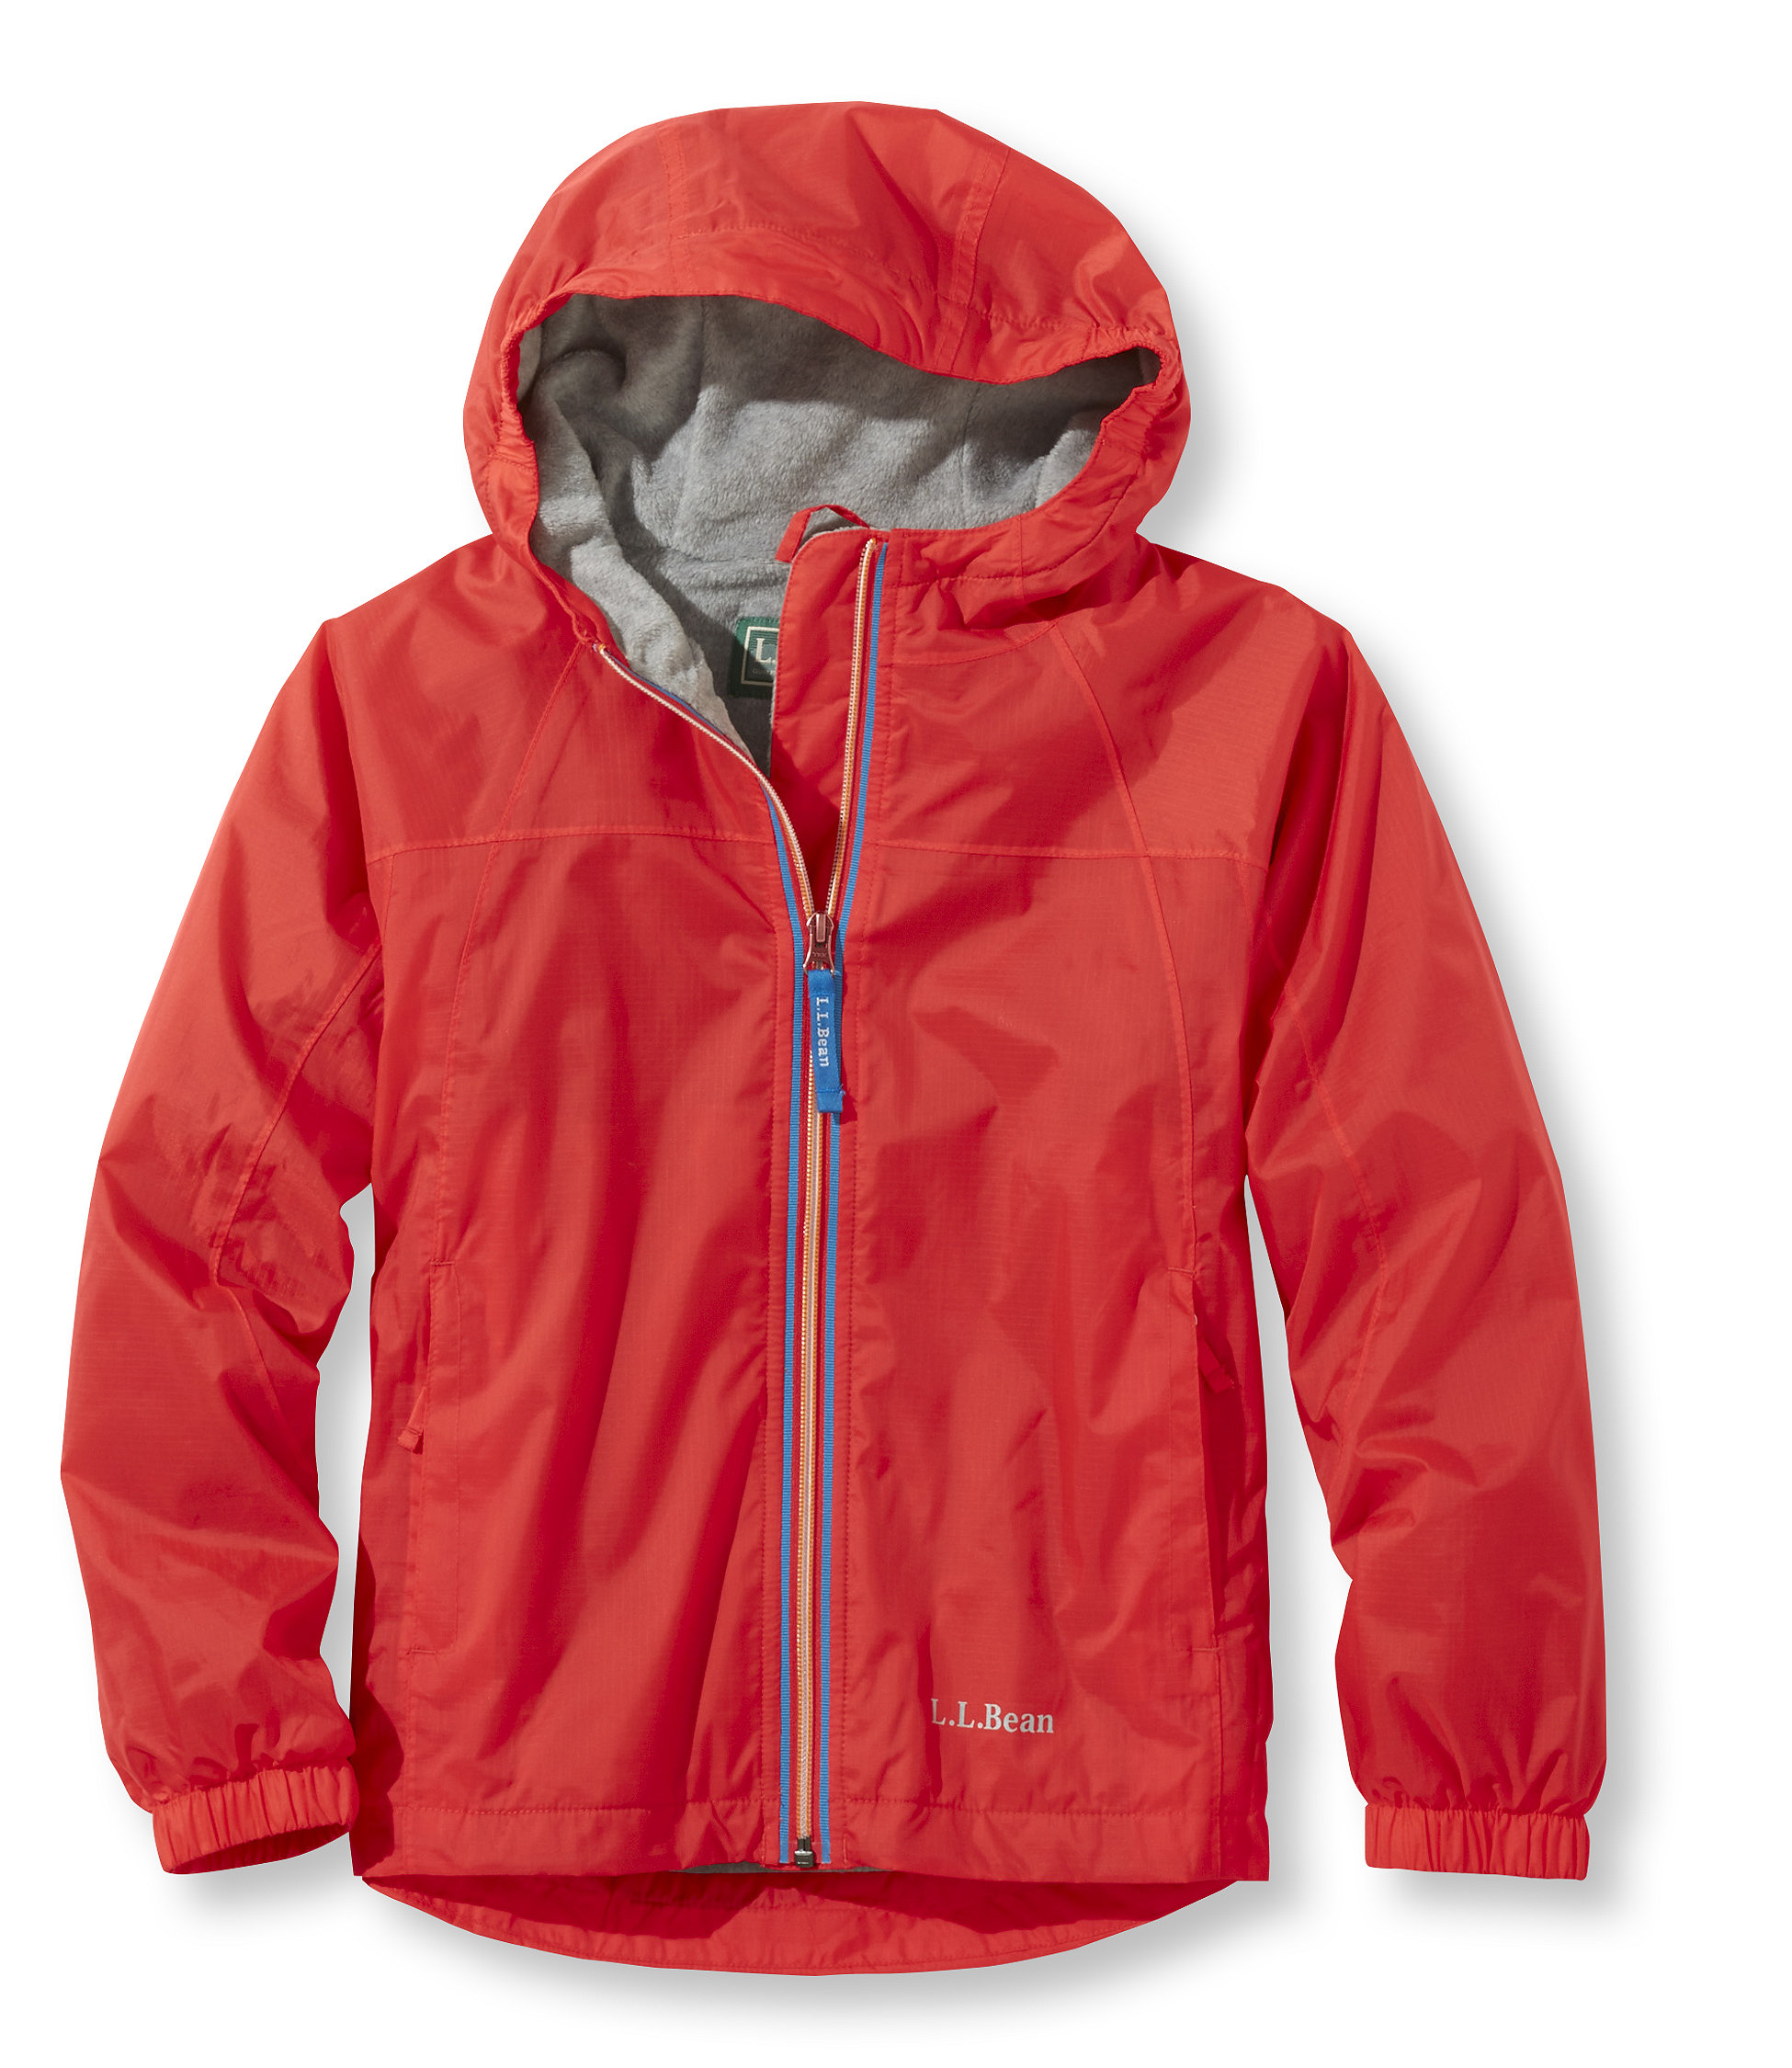 L.L.Bean Discovery Rain Jacket, Lined